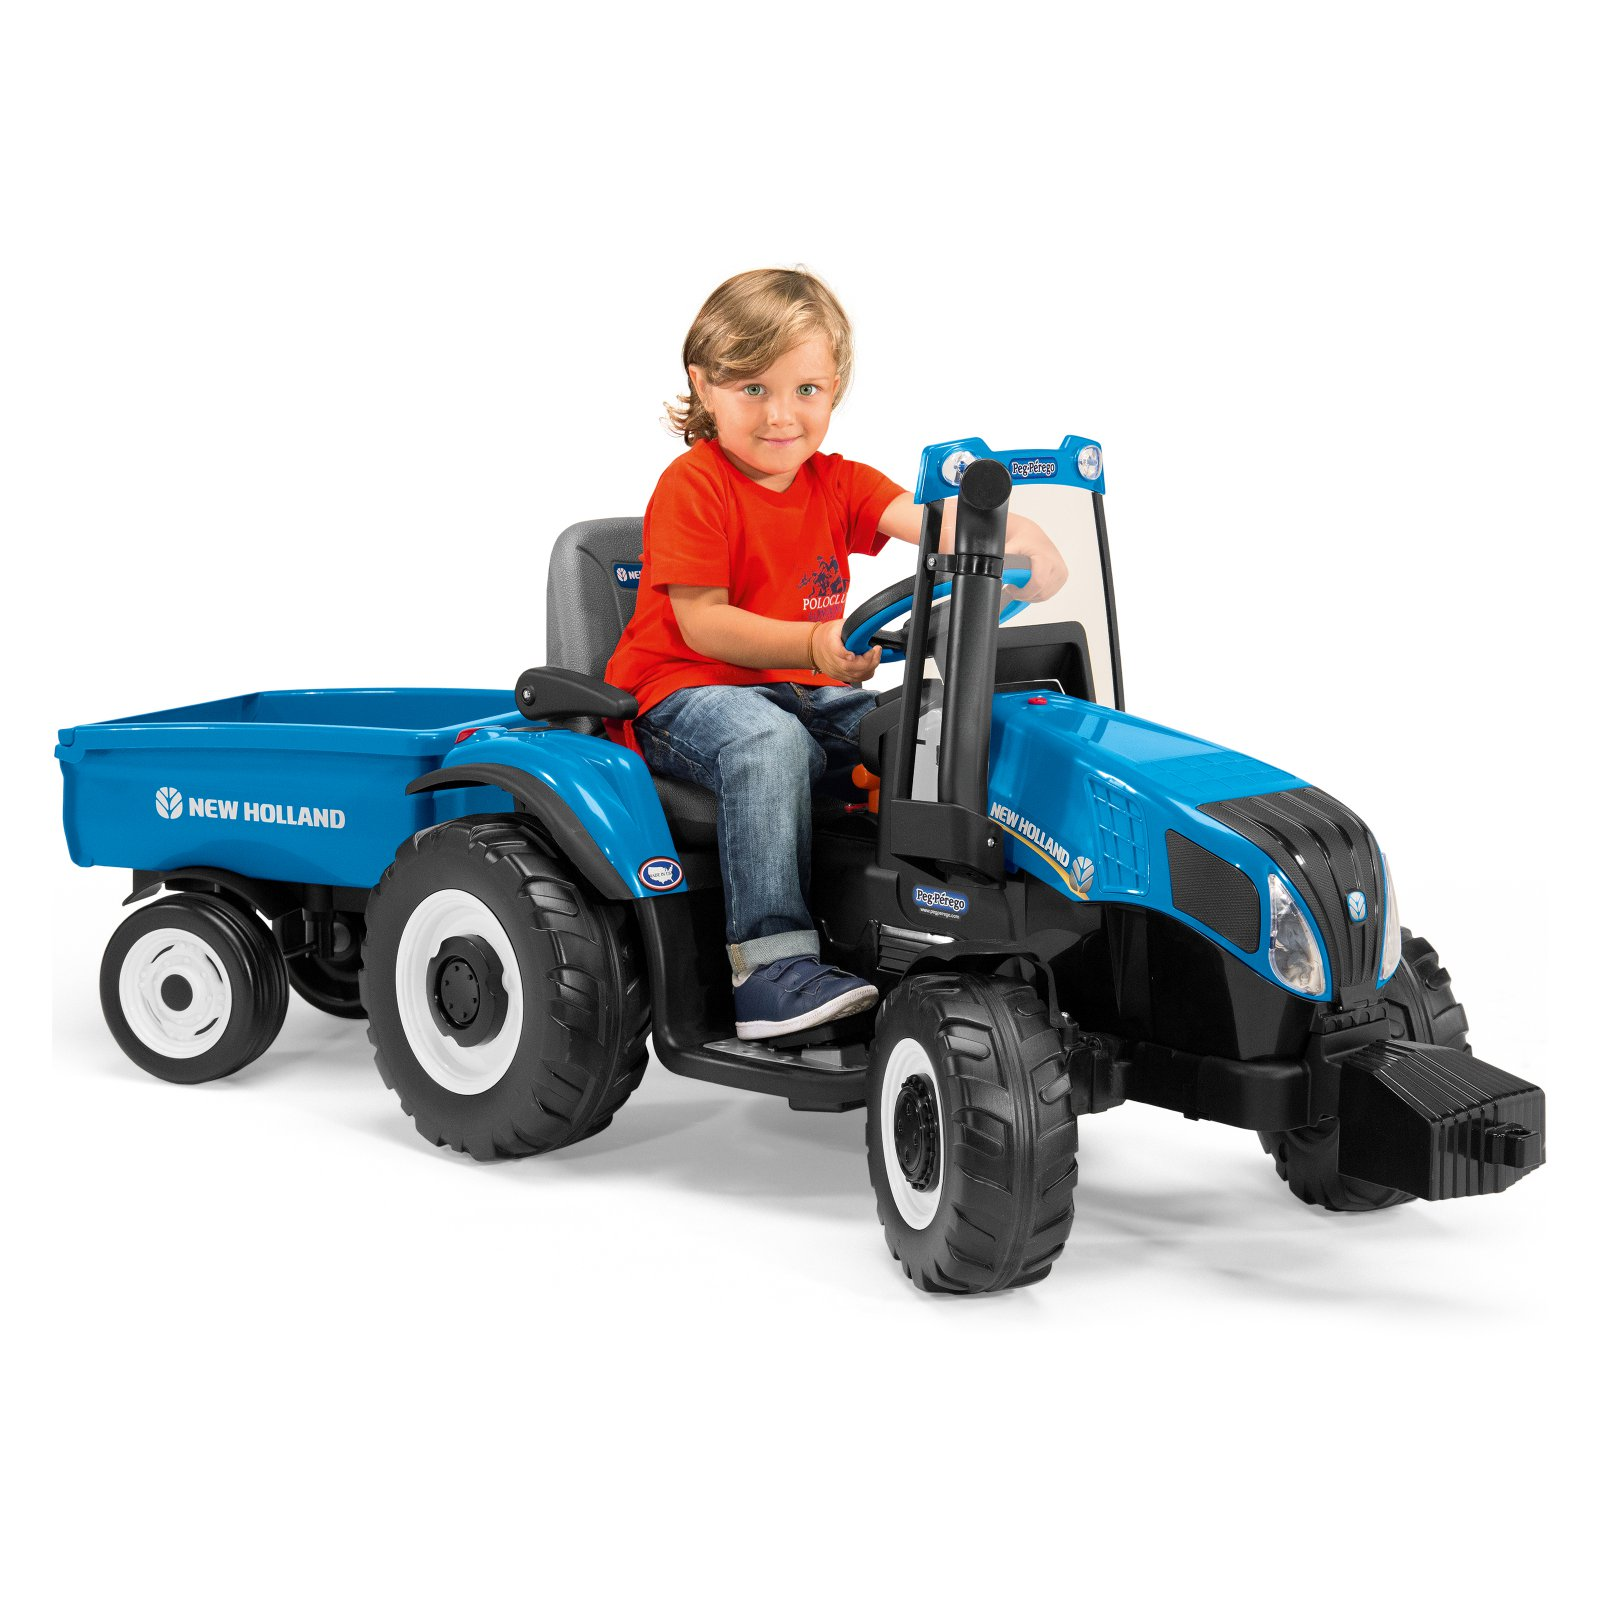 Peg Perego New Holland Tractor Battery Powered Riding Toy by